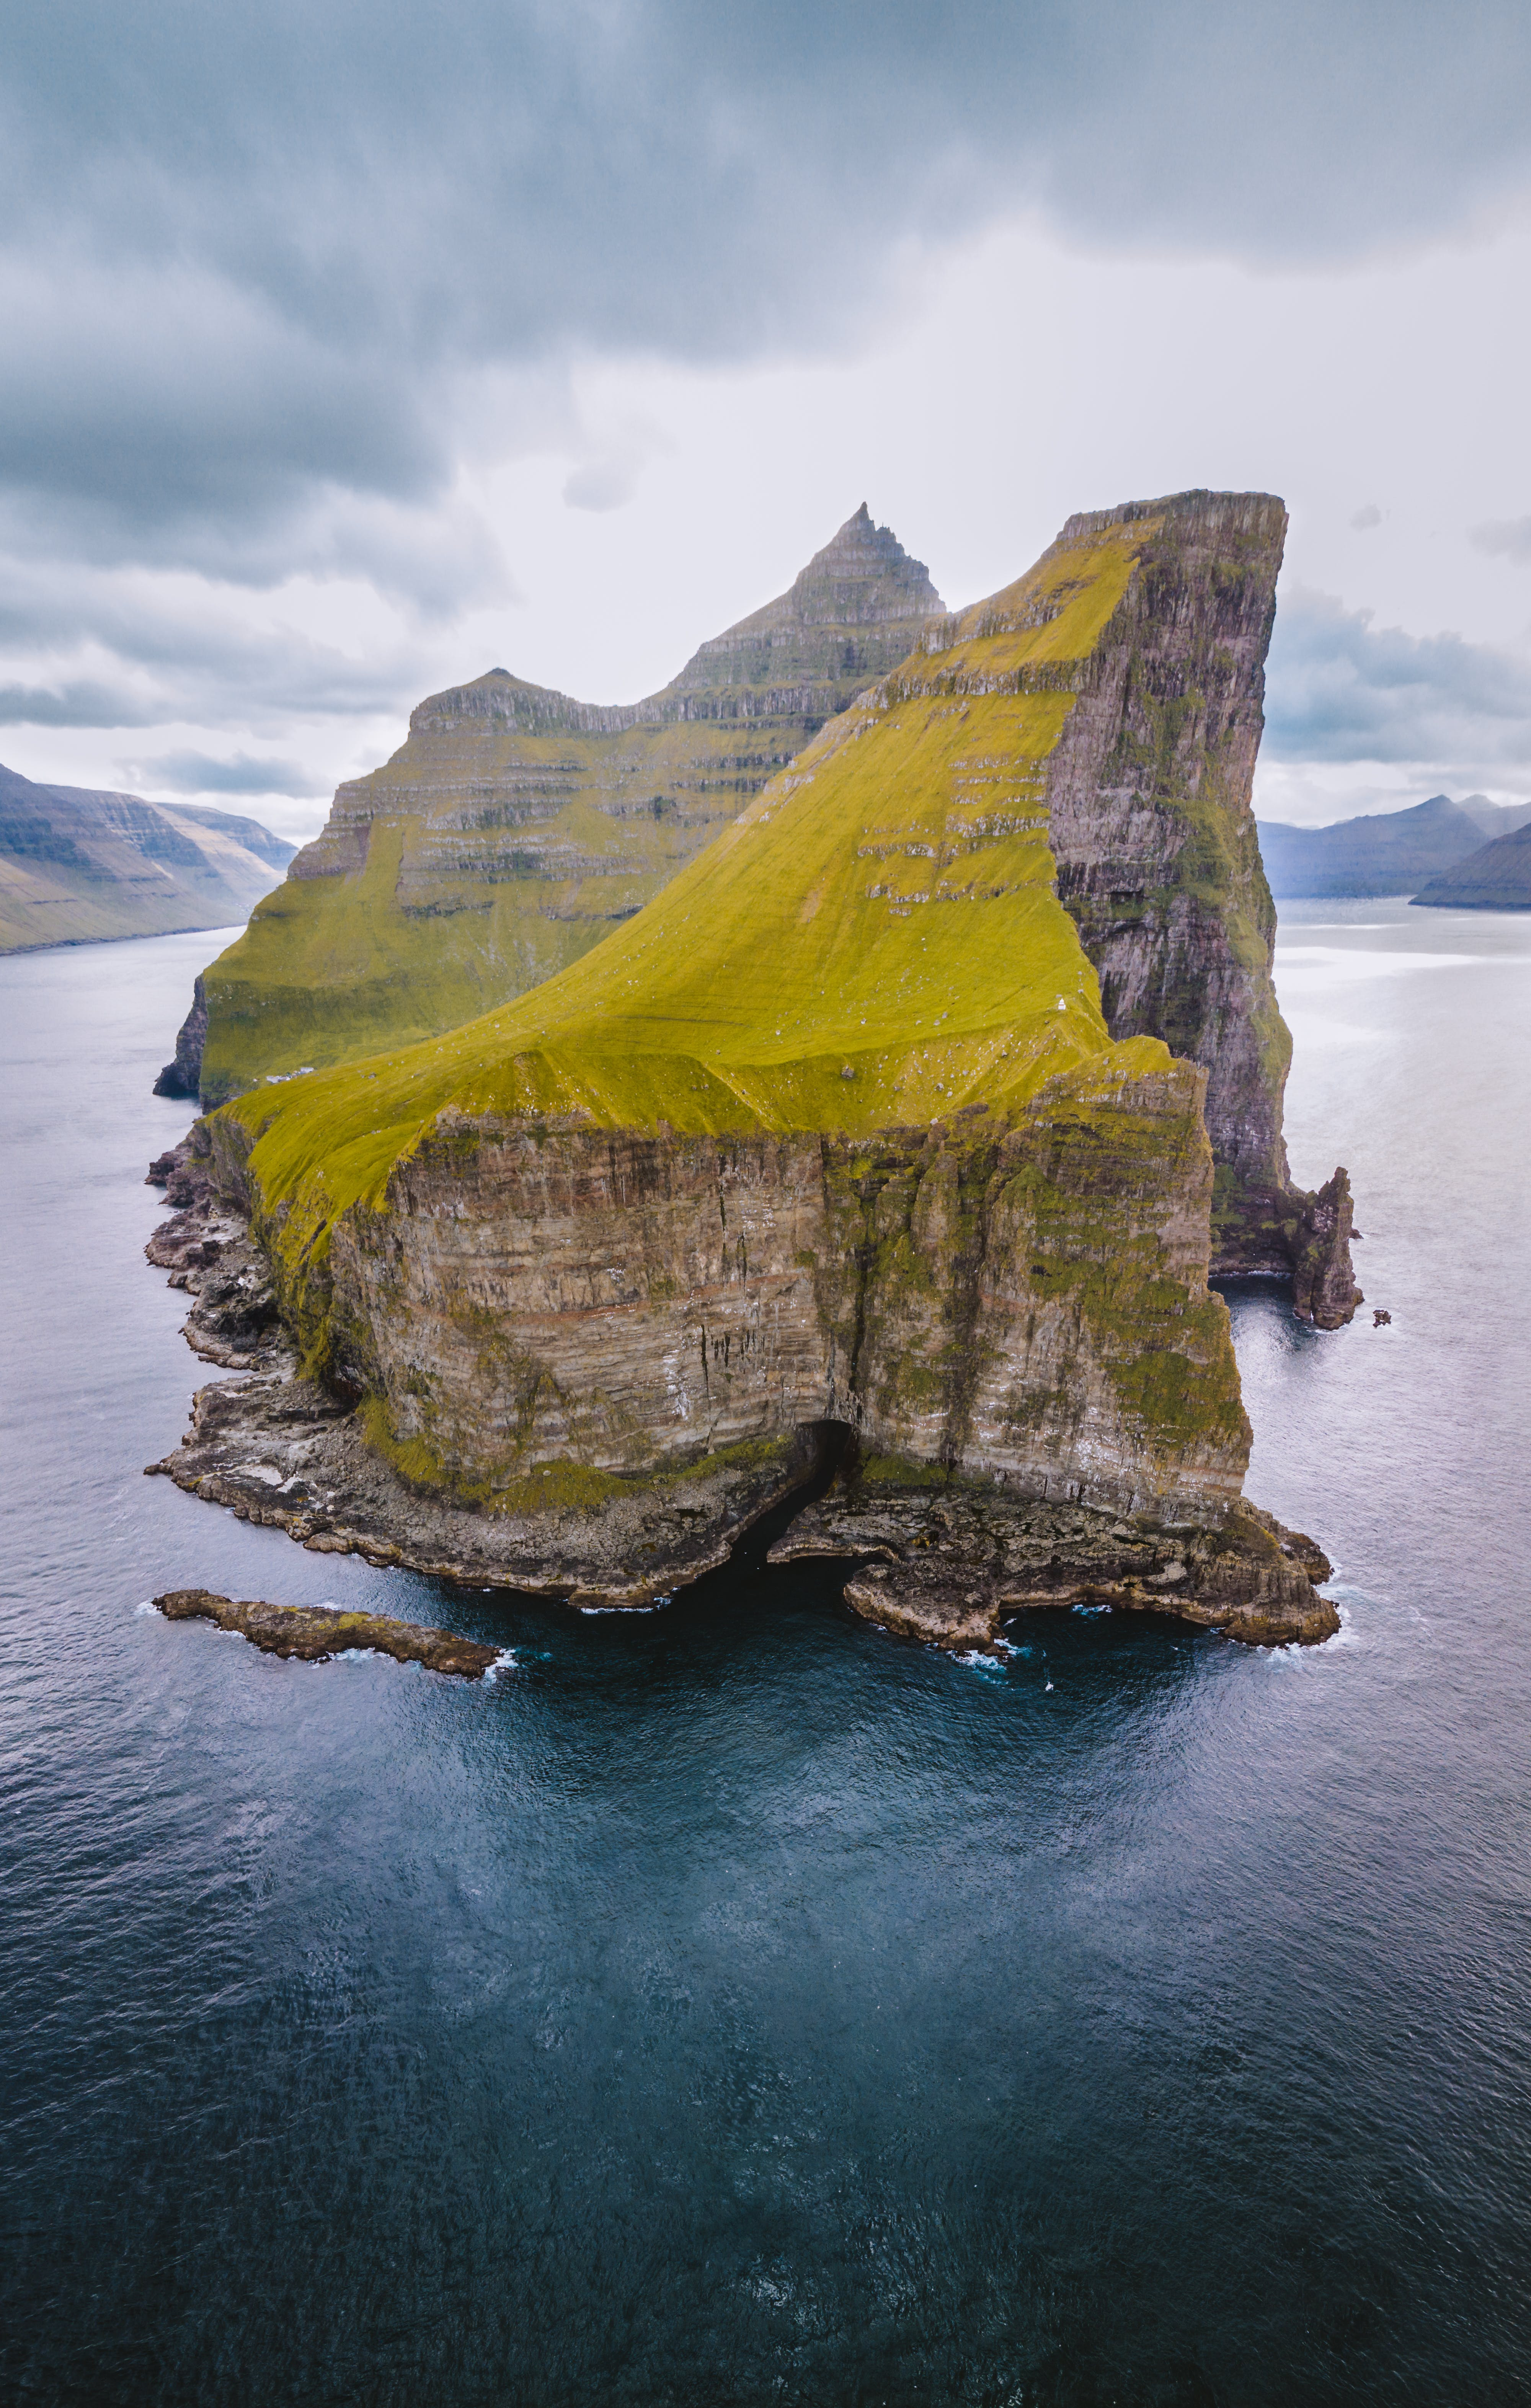 Mountain Rock on Body of Water